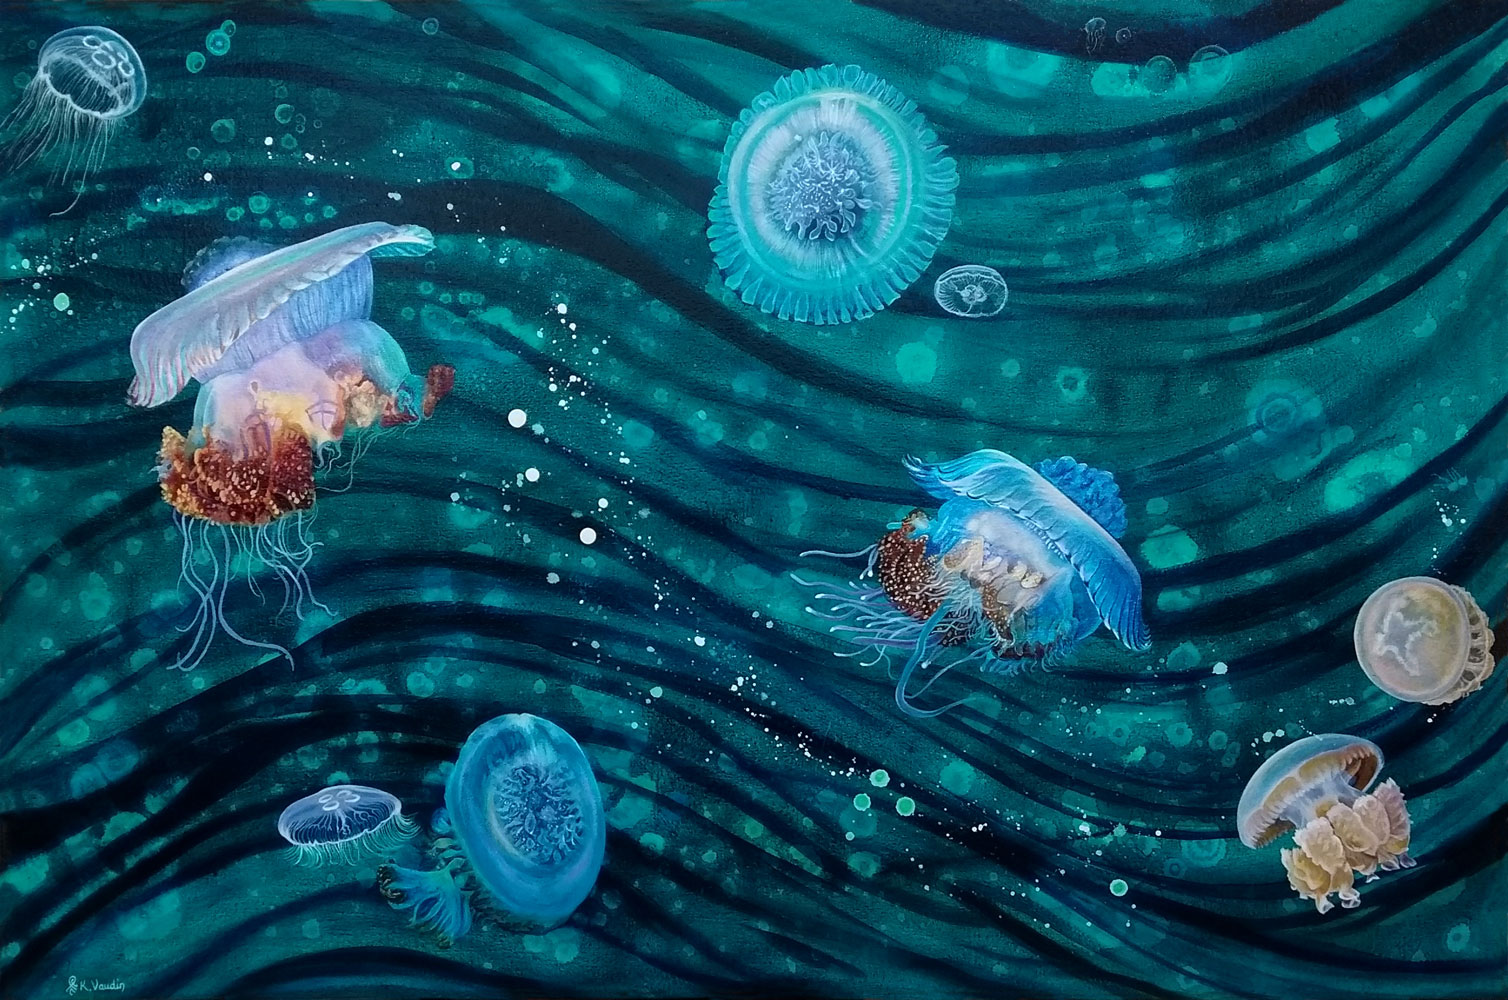 Jellyfish wave abstract painting.